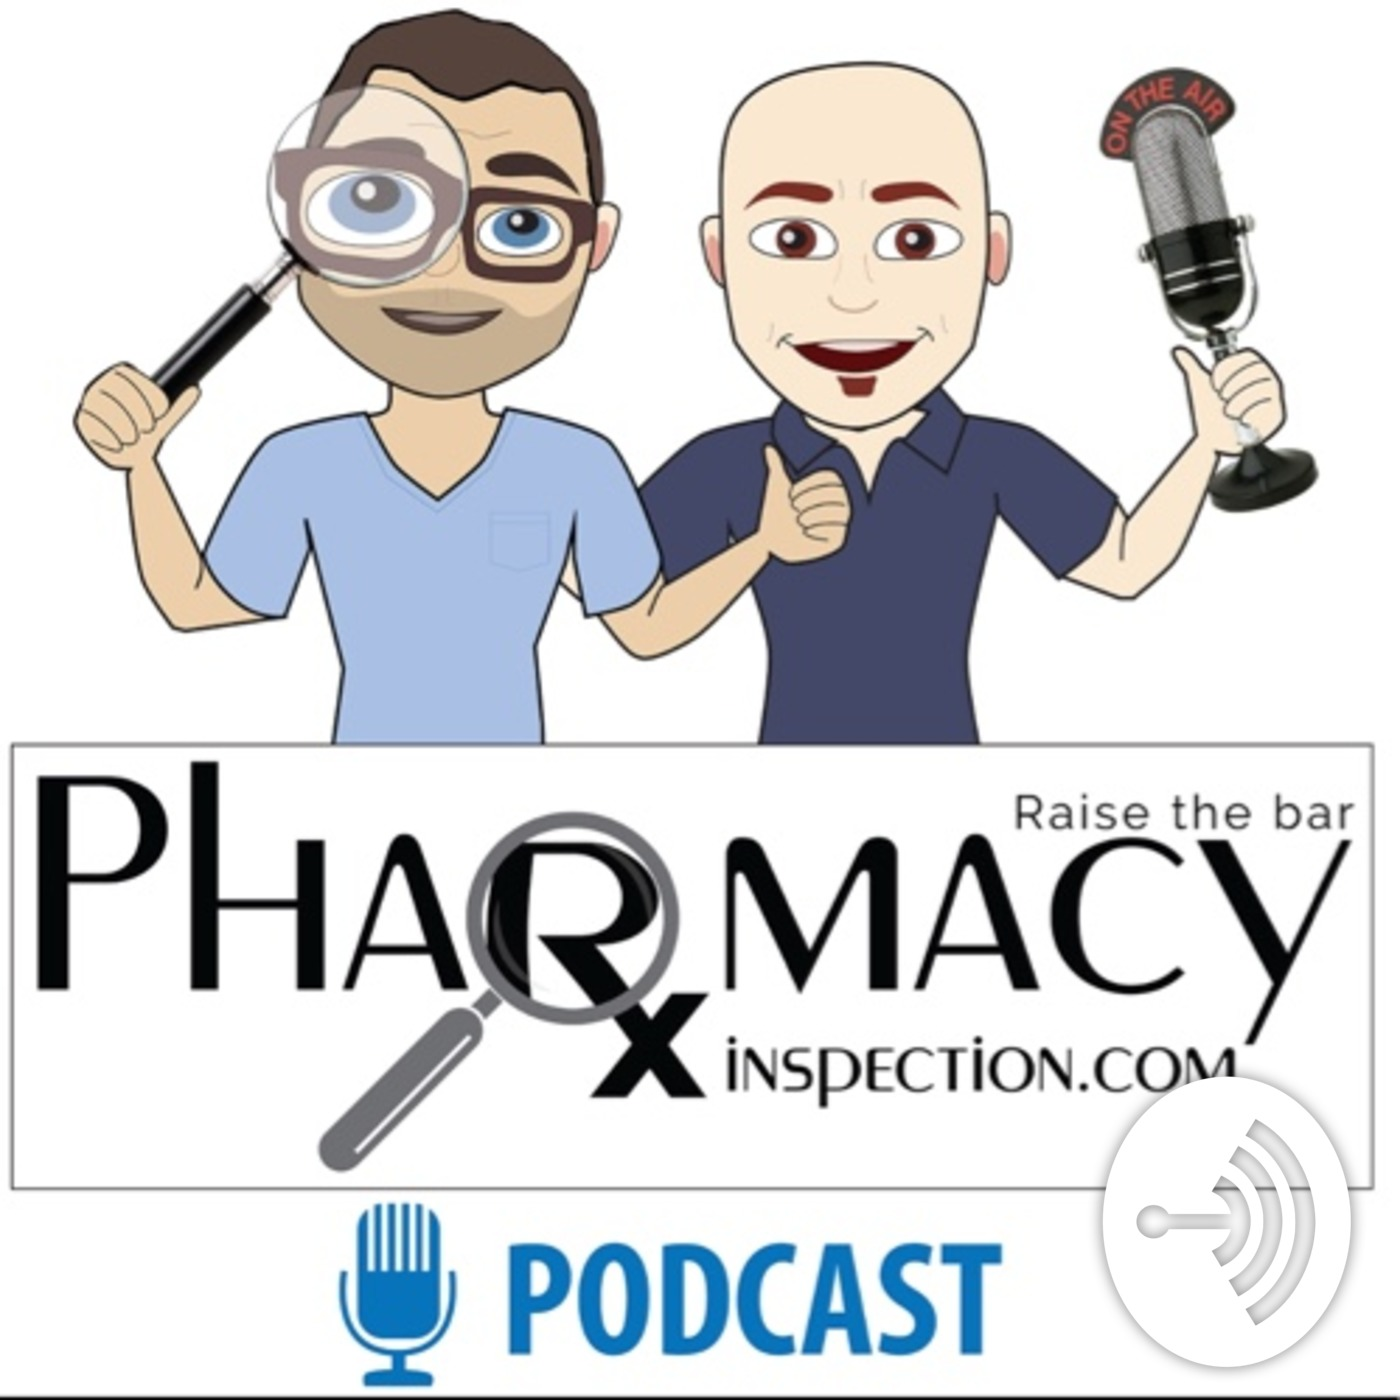 Pharmacy Inspection Podcast Episode 21 - Lauren Bernick